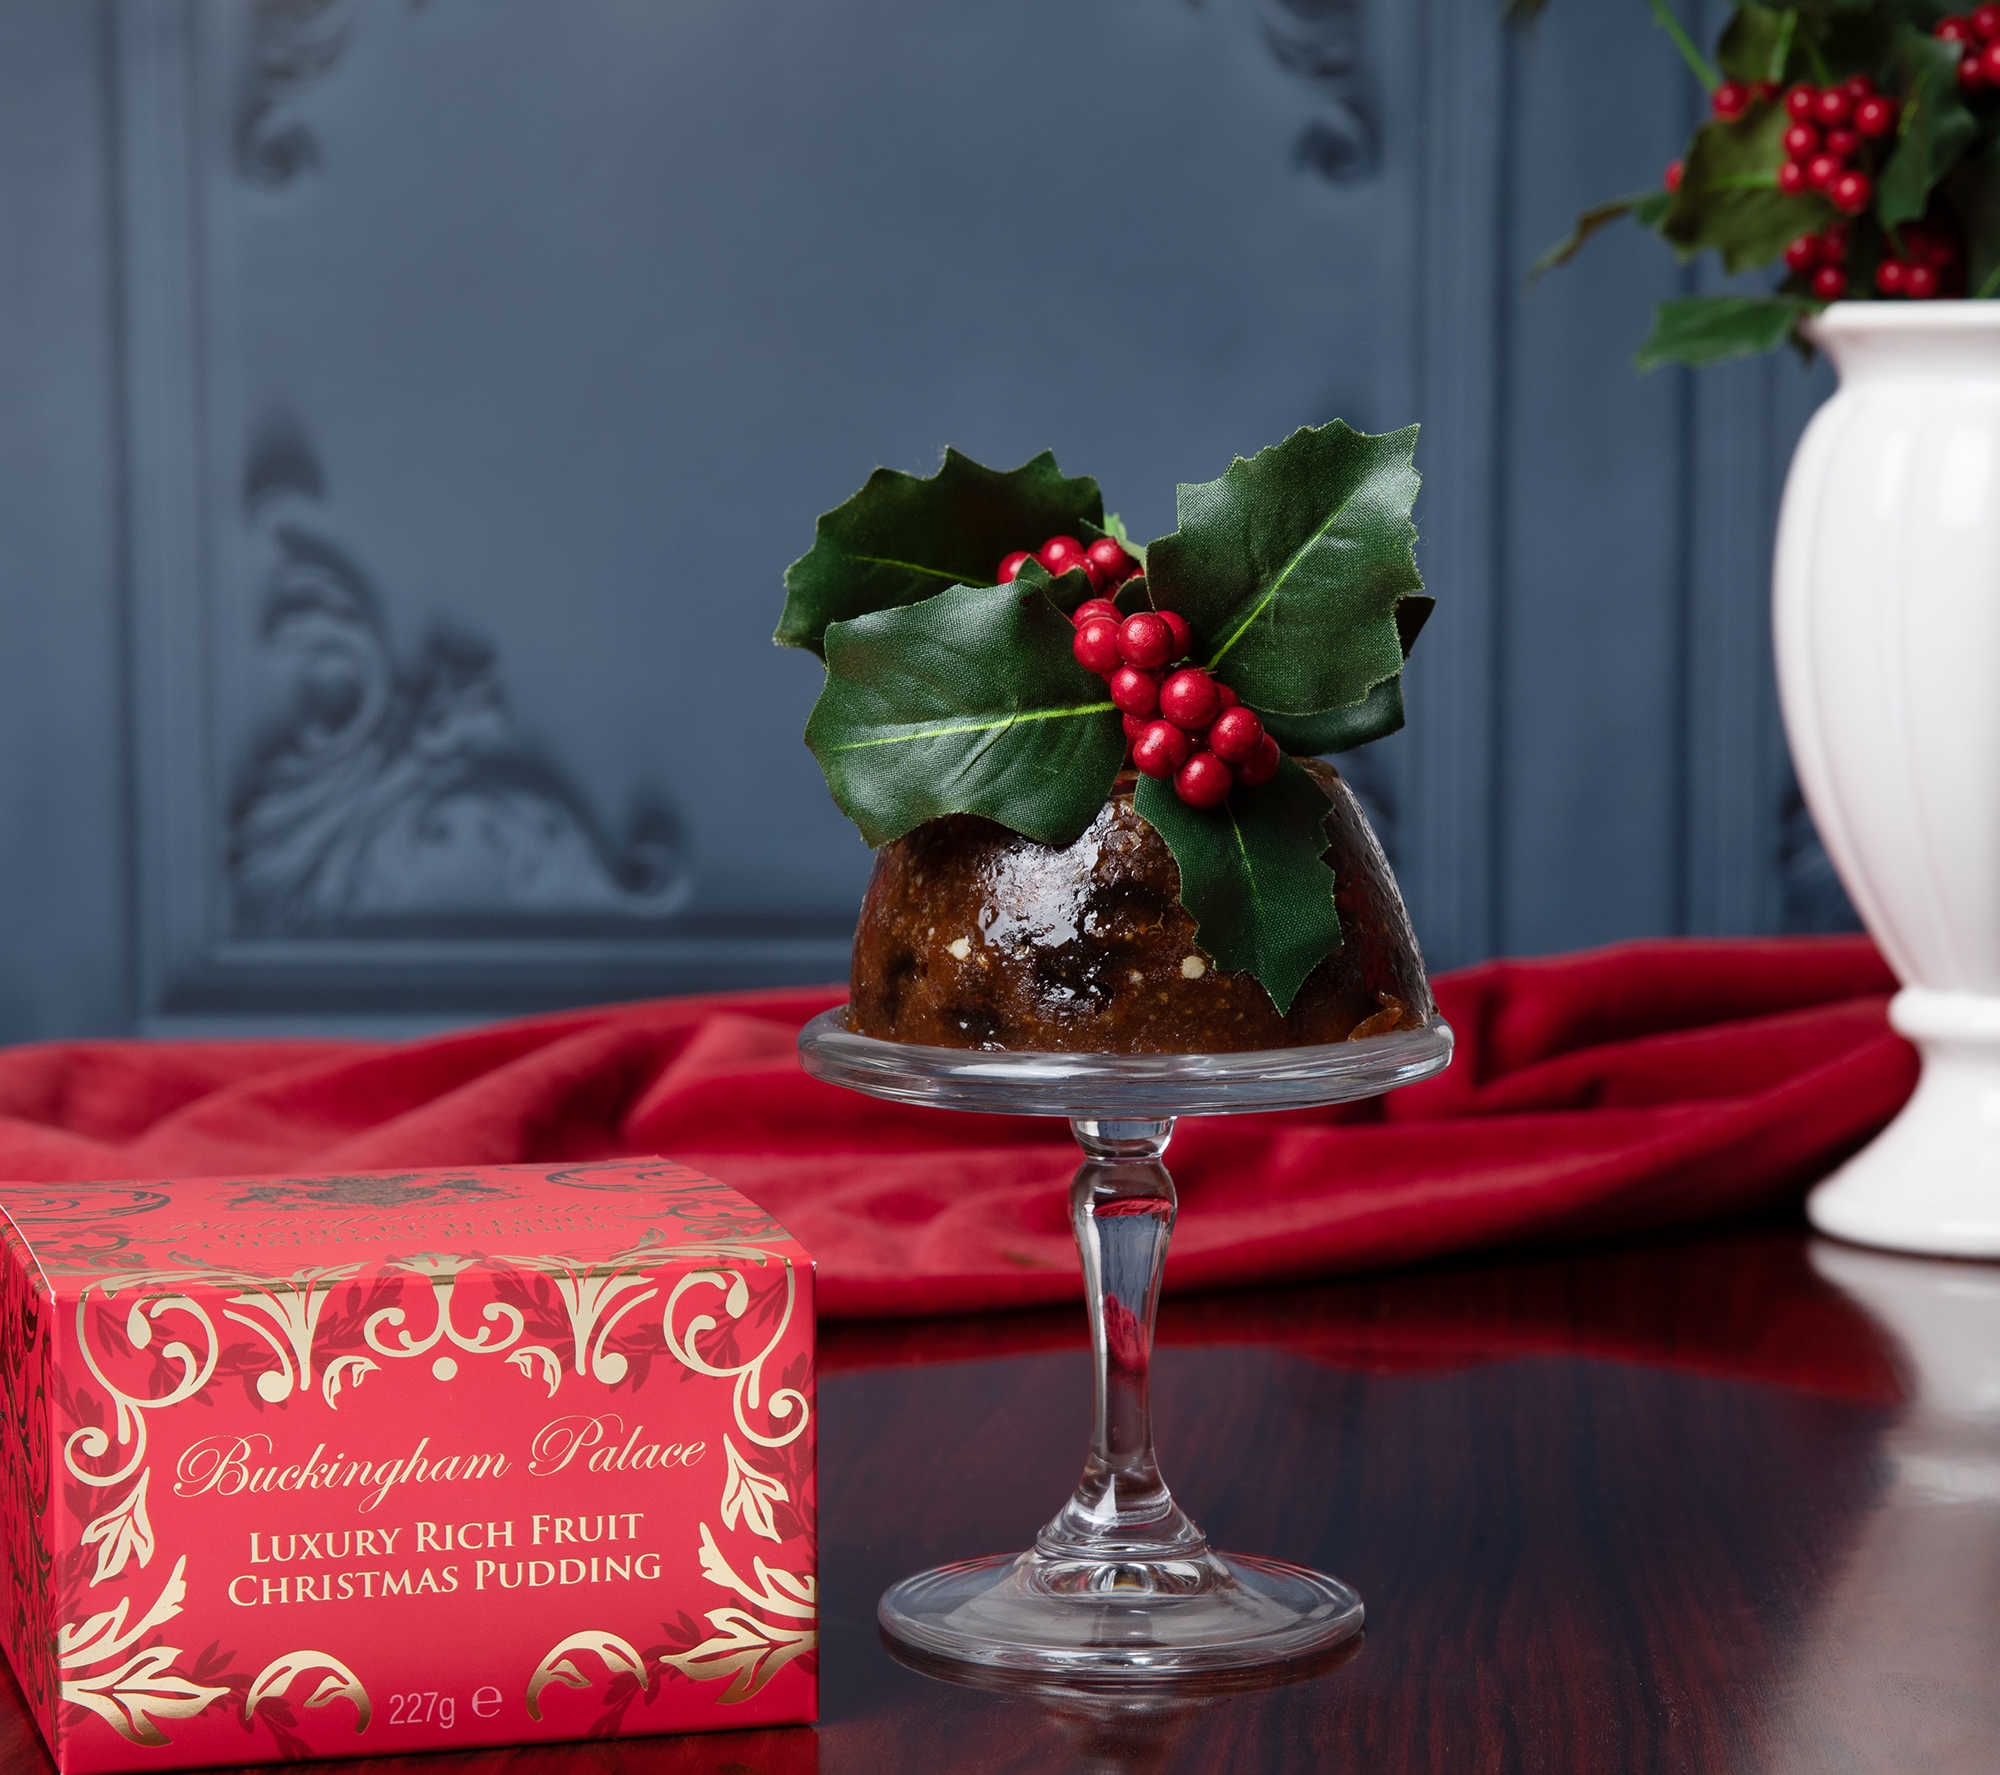 Luxury Christmas pudding with its festive red box